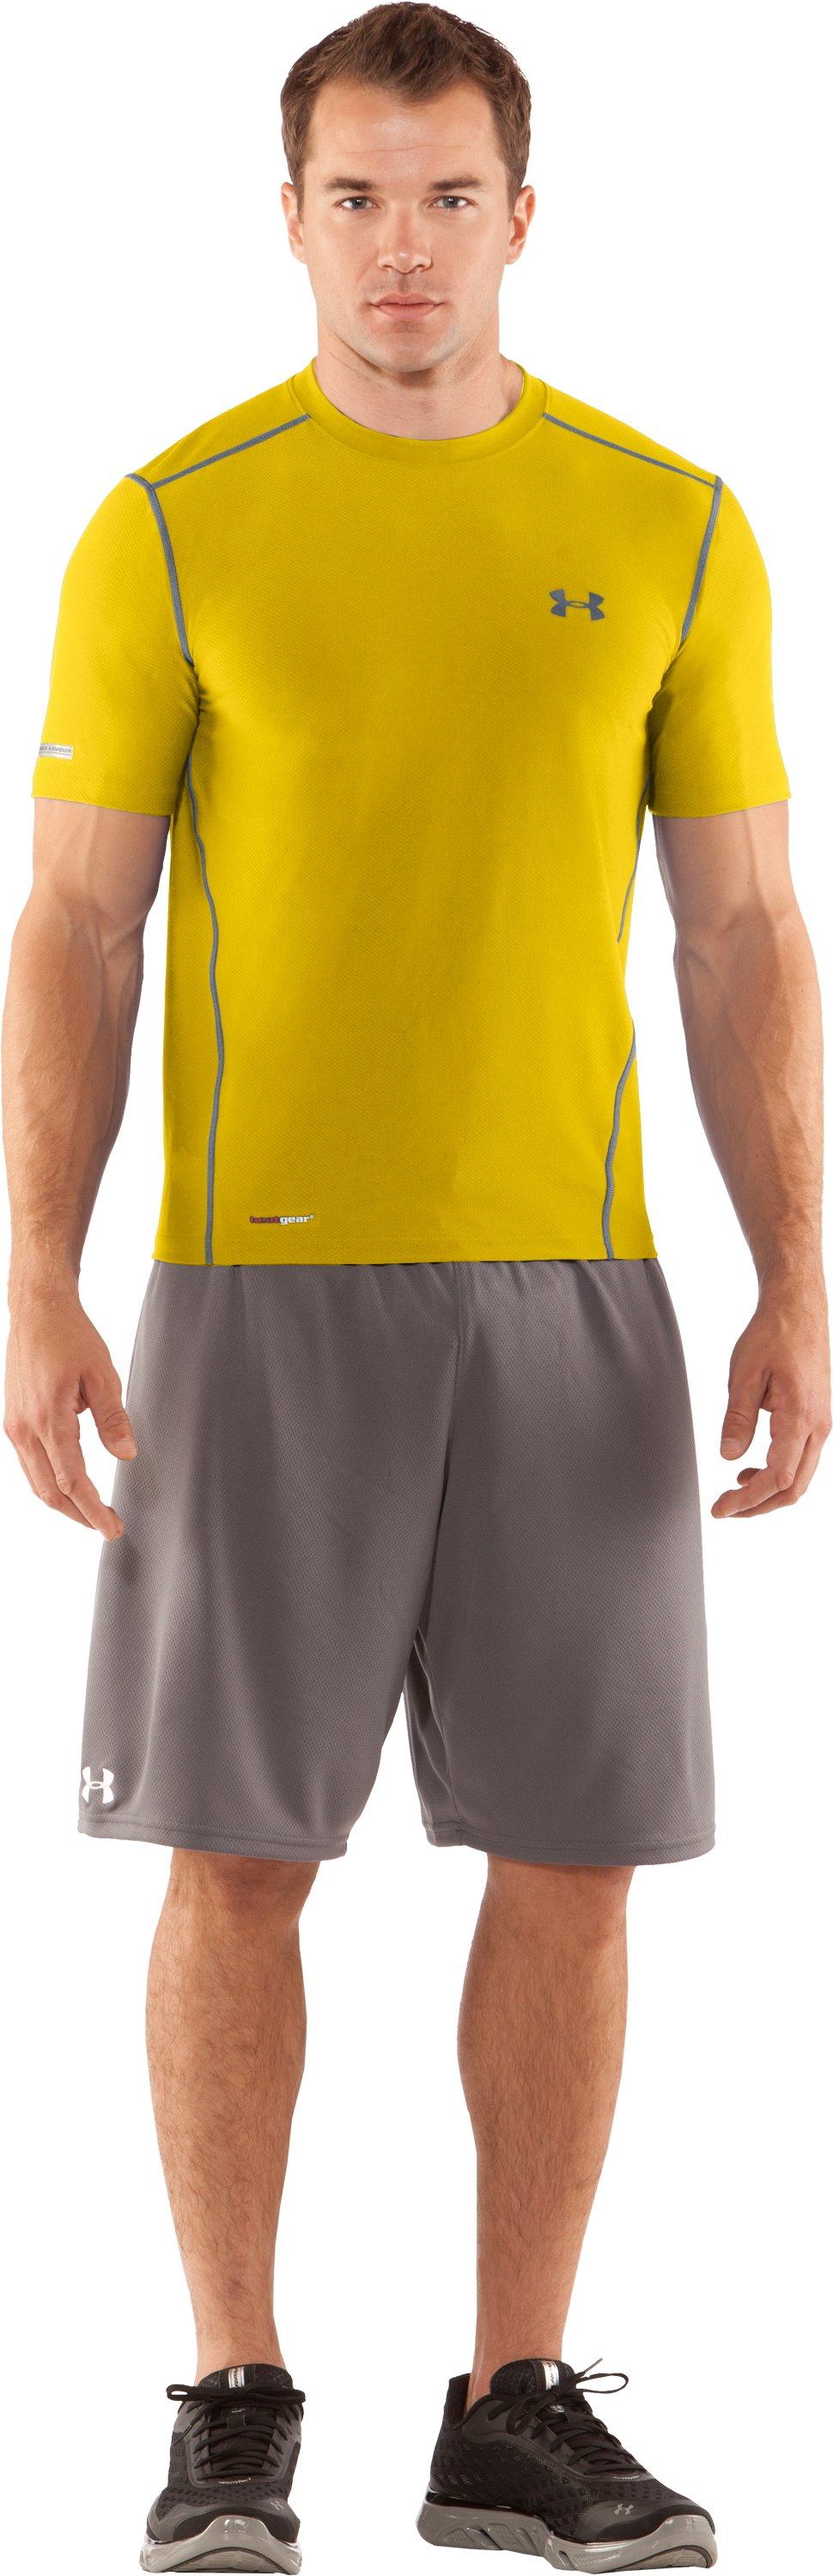 Men's HeatGear® Fitted Short Sleeve Crew, Taxi